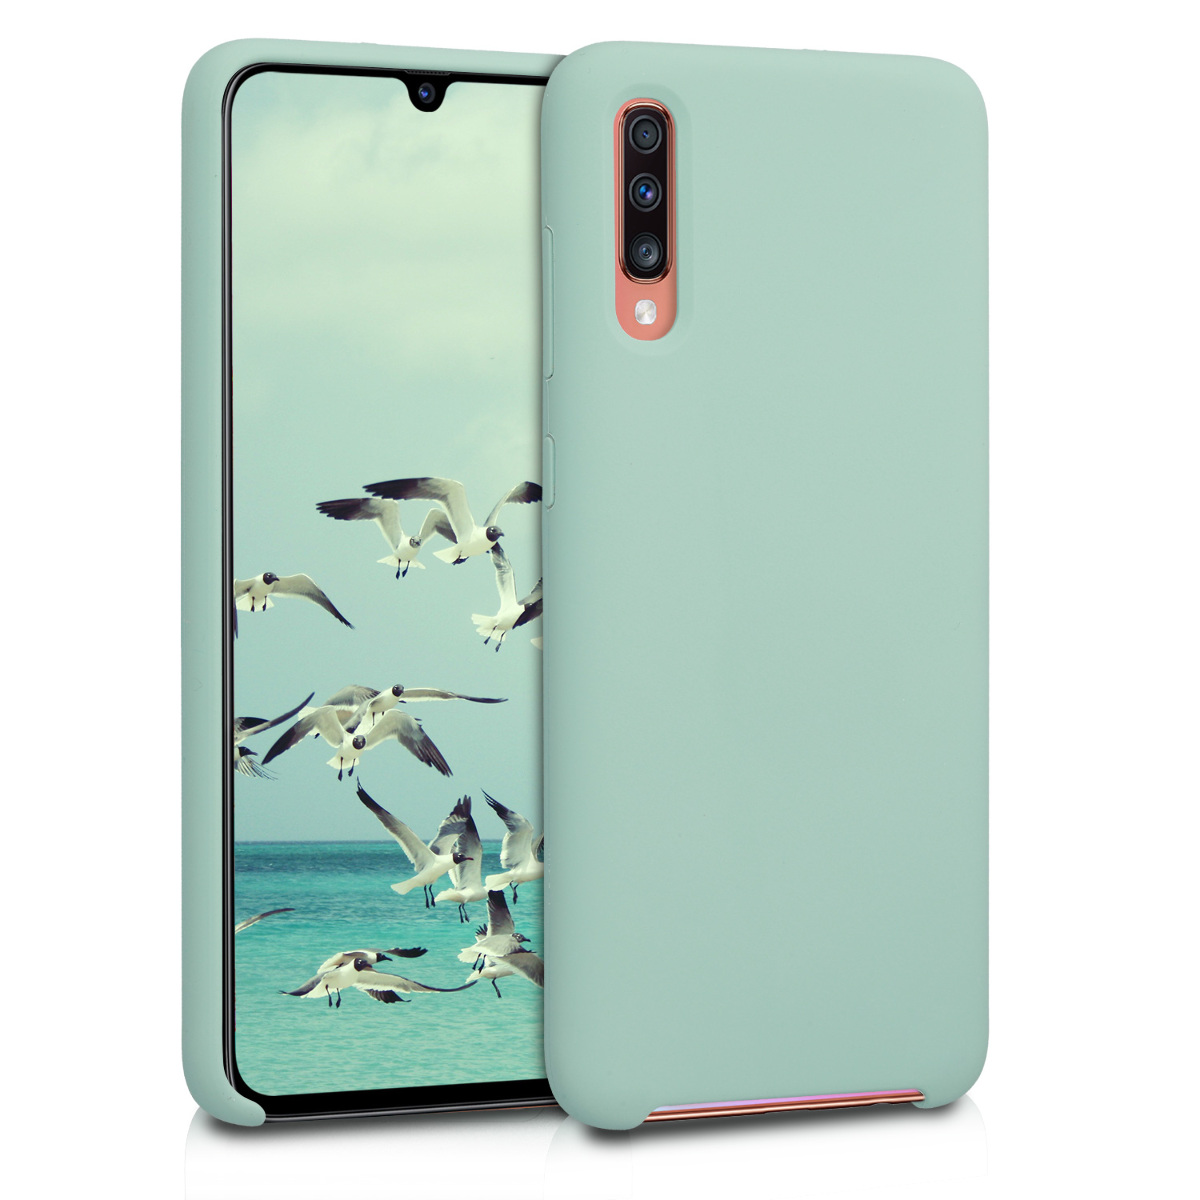 KW Θήκη Σιλικόνης Samsung Galaxy A70 - Soft Flexible Rubber - Mint Matte (49097.50)